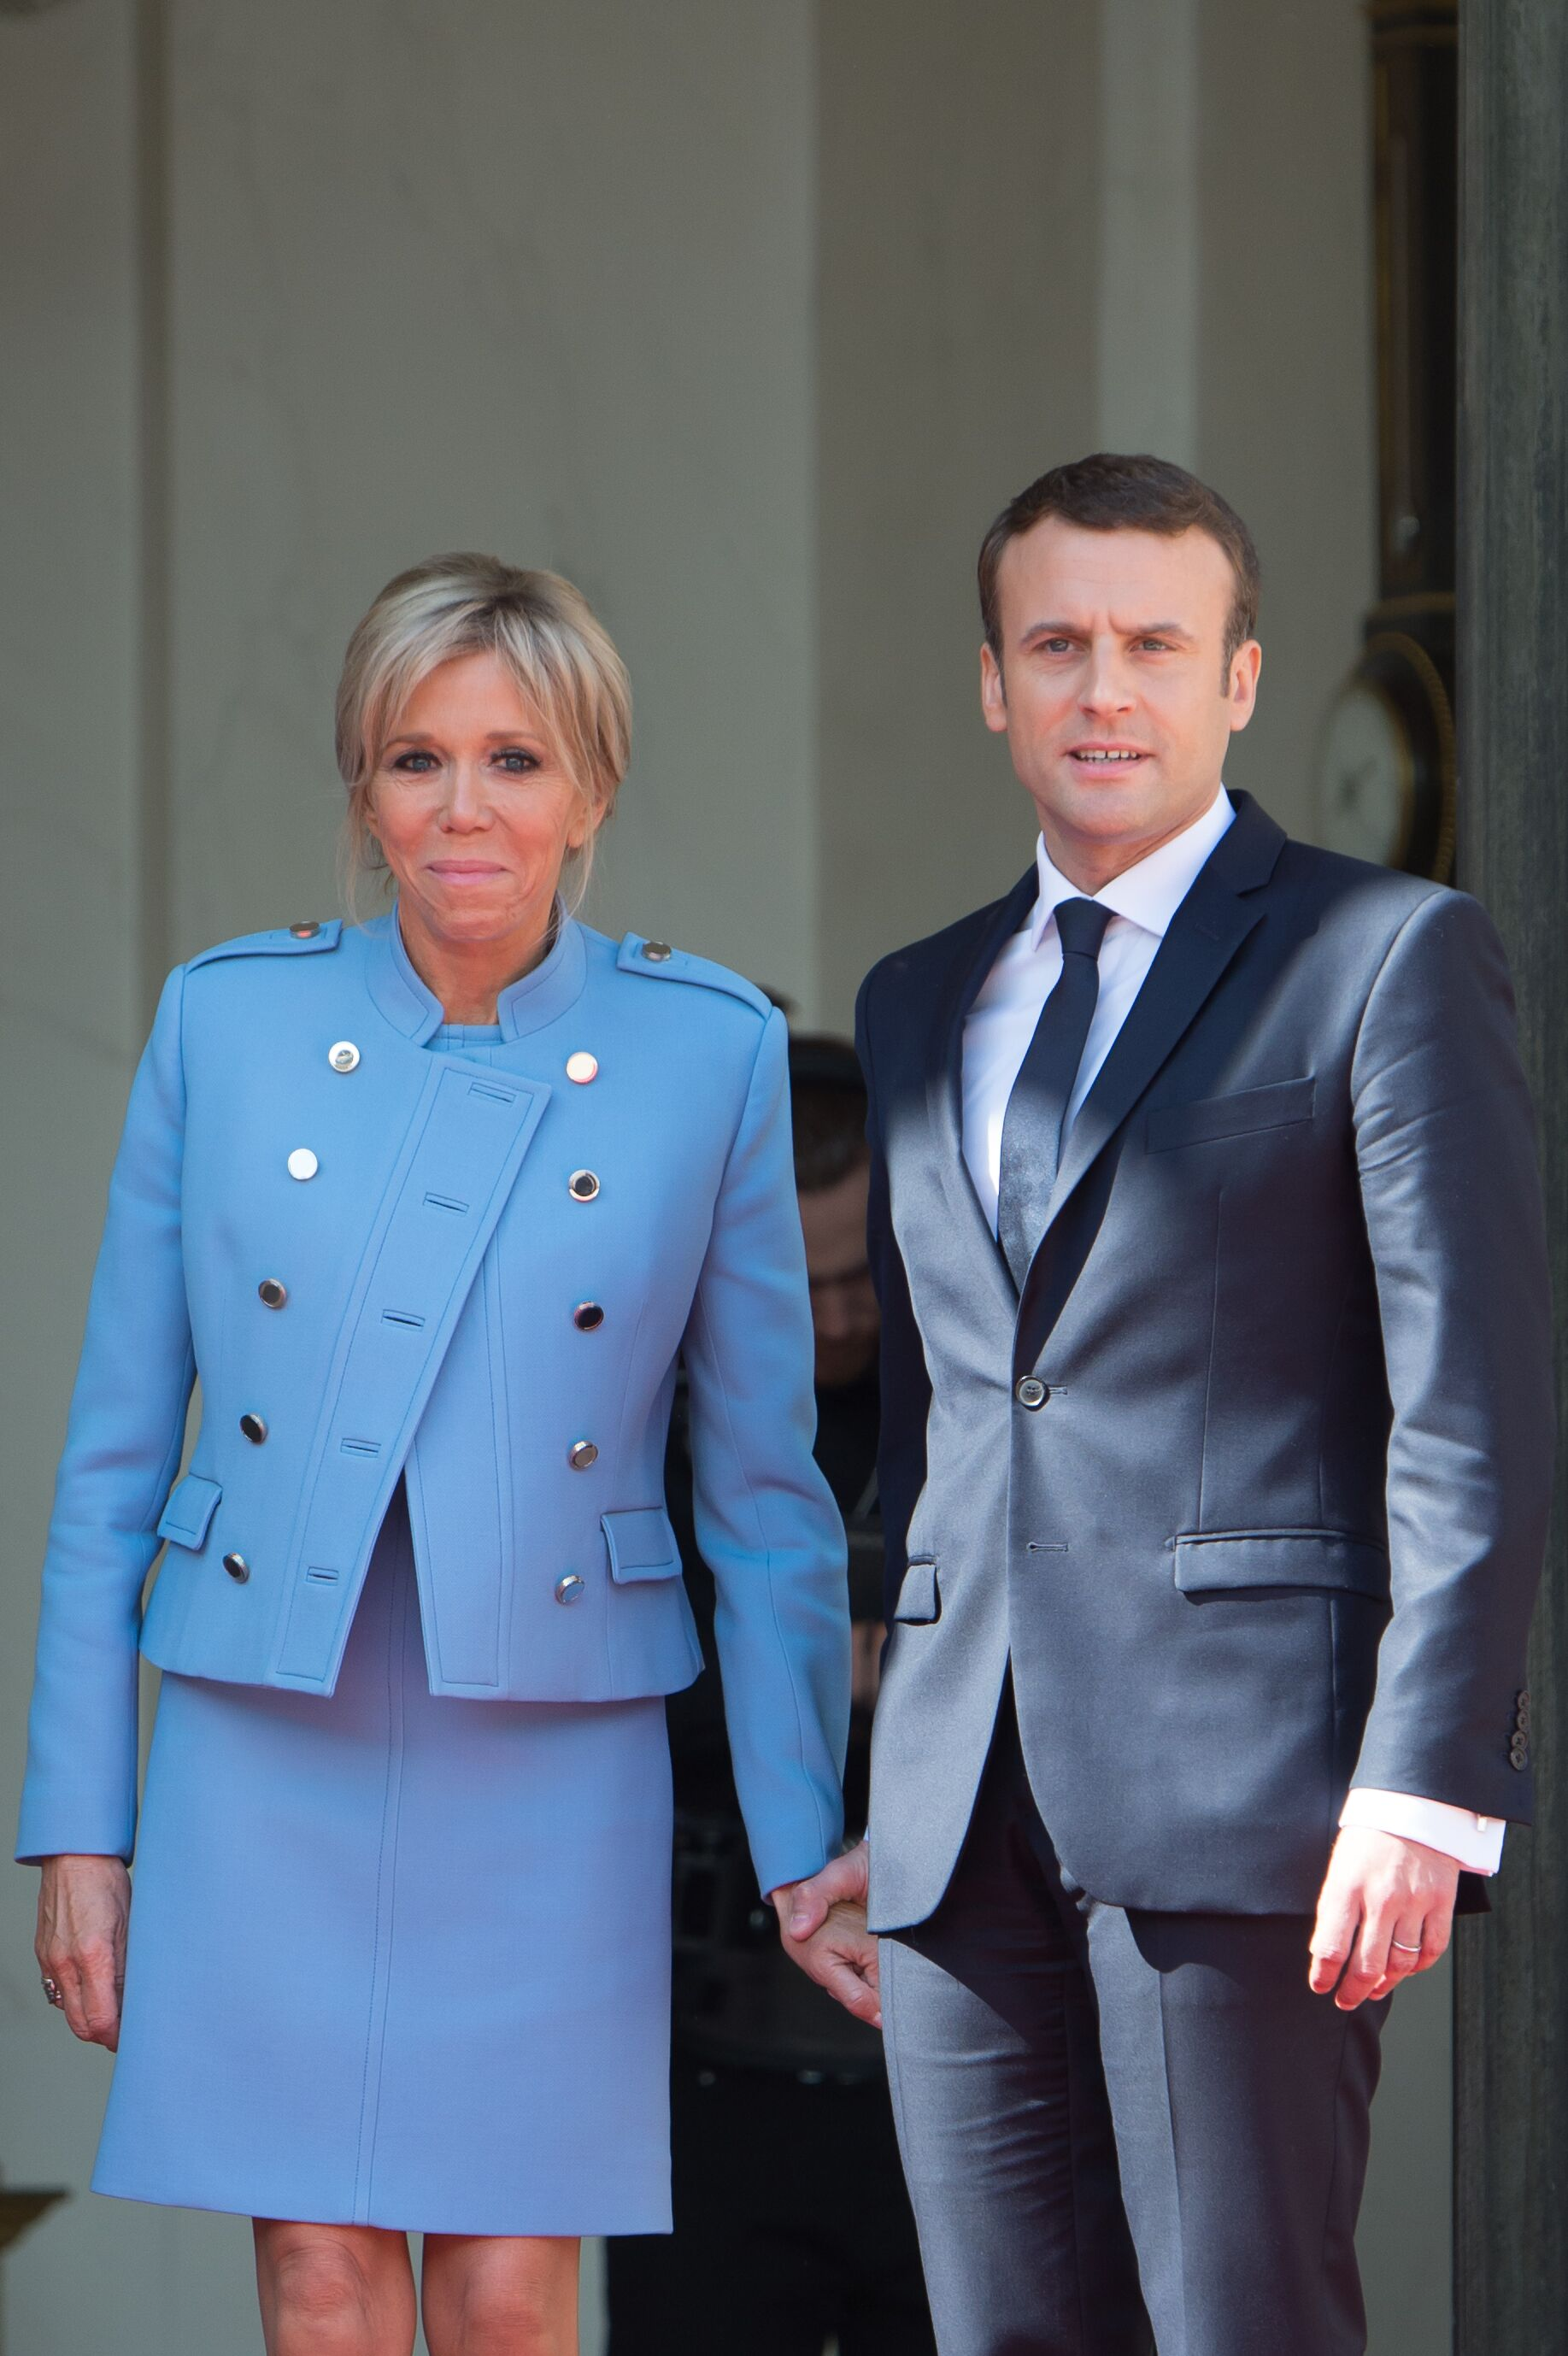 Brigitte et Emmanuel Macron. l Source: Getty Images